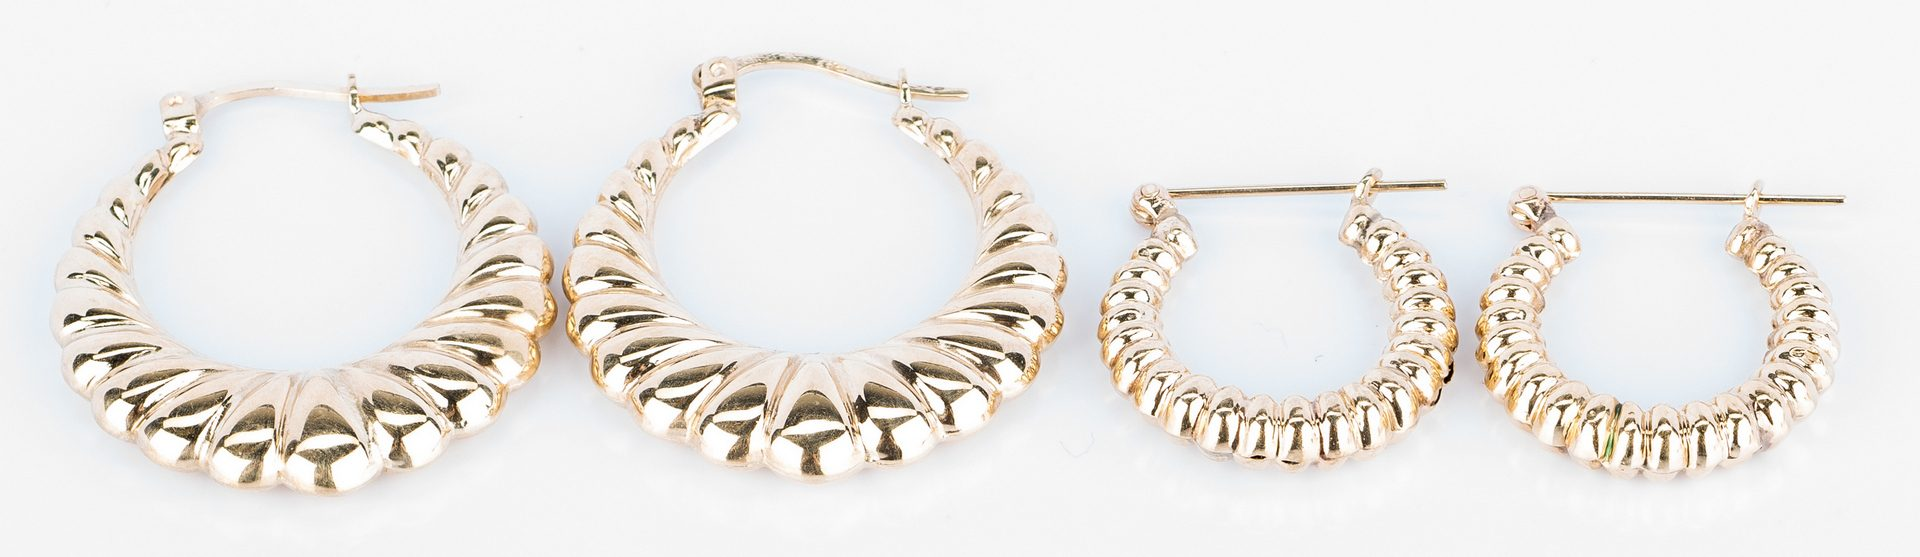 Lot 409: Group 14k Earrings and Chains, 36.2 gr.